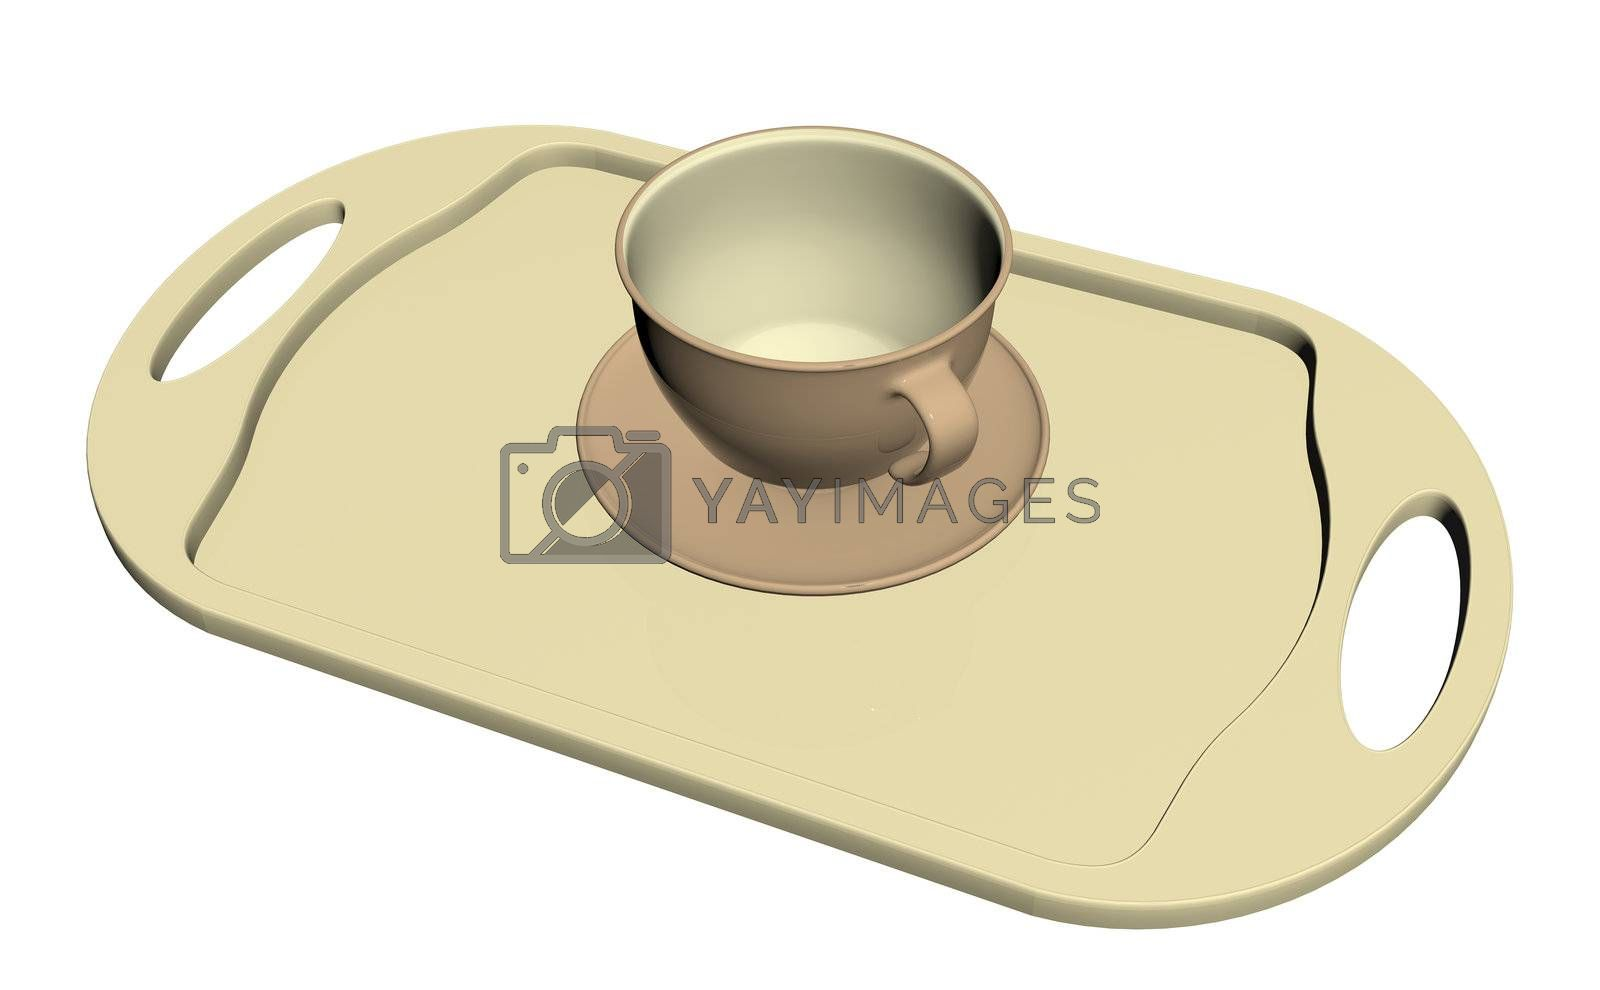 Teacup and dish on a cream colored platter, isolated against a white background